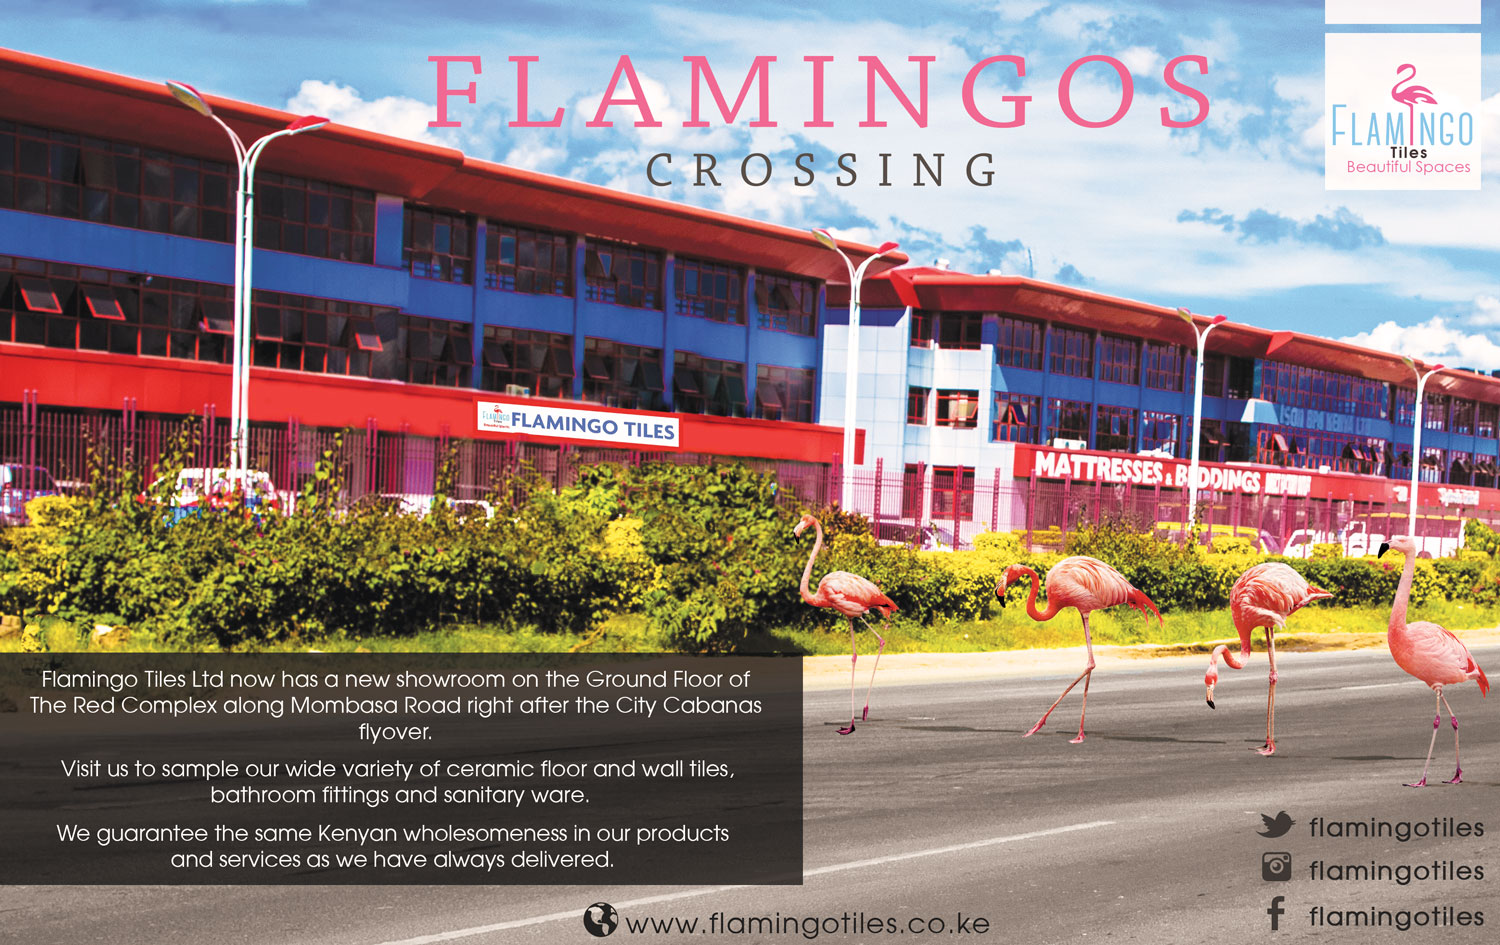 Flamingos-crossing-newspaper-AD